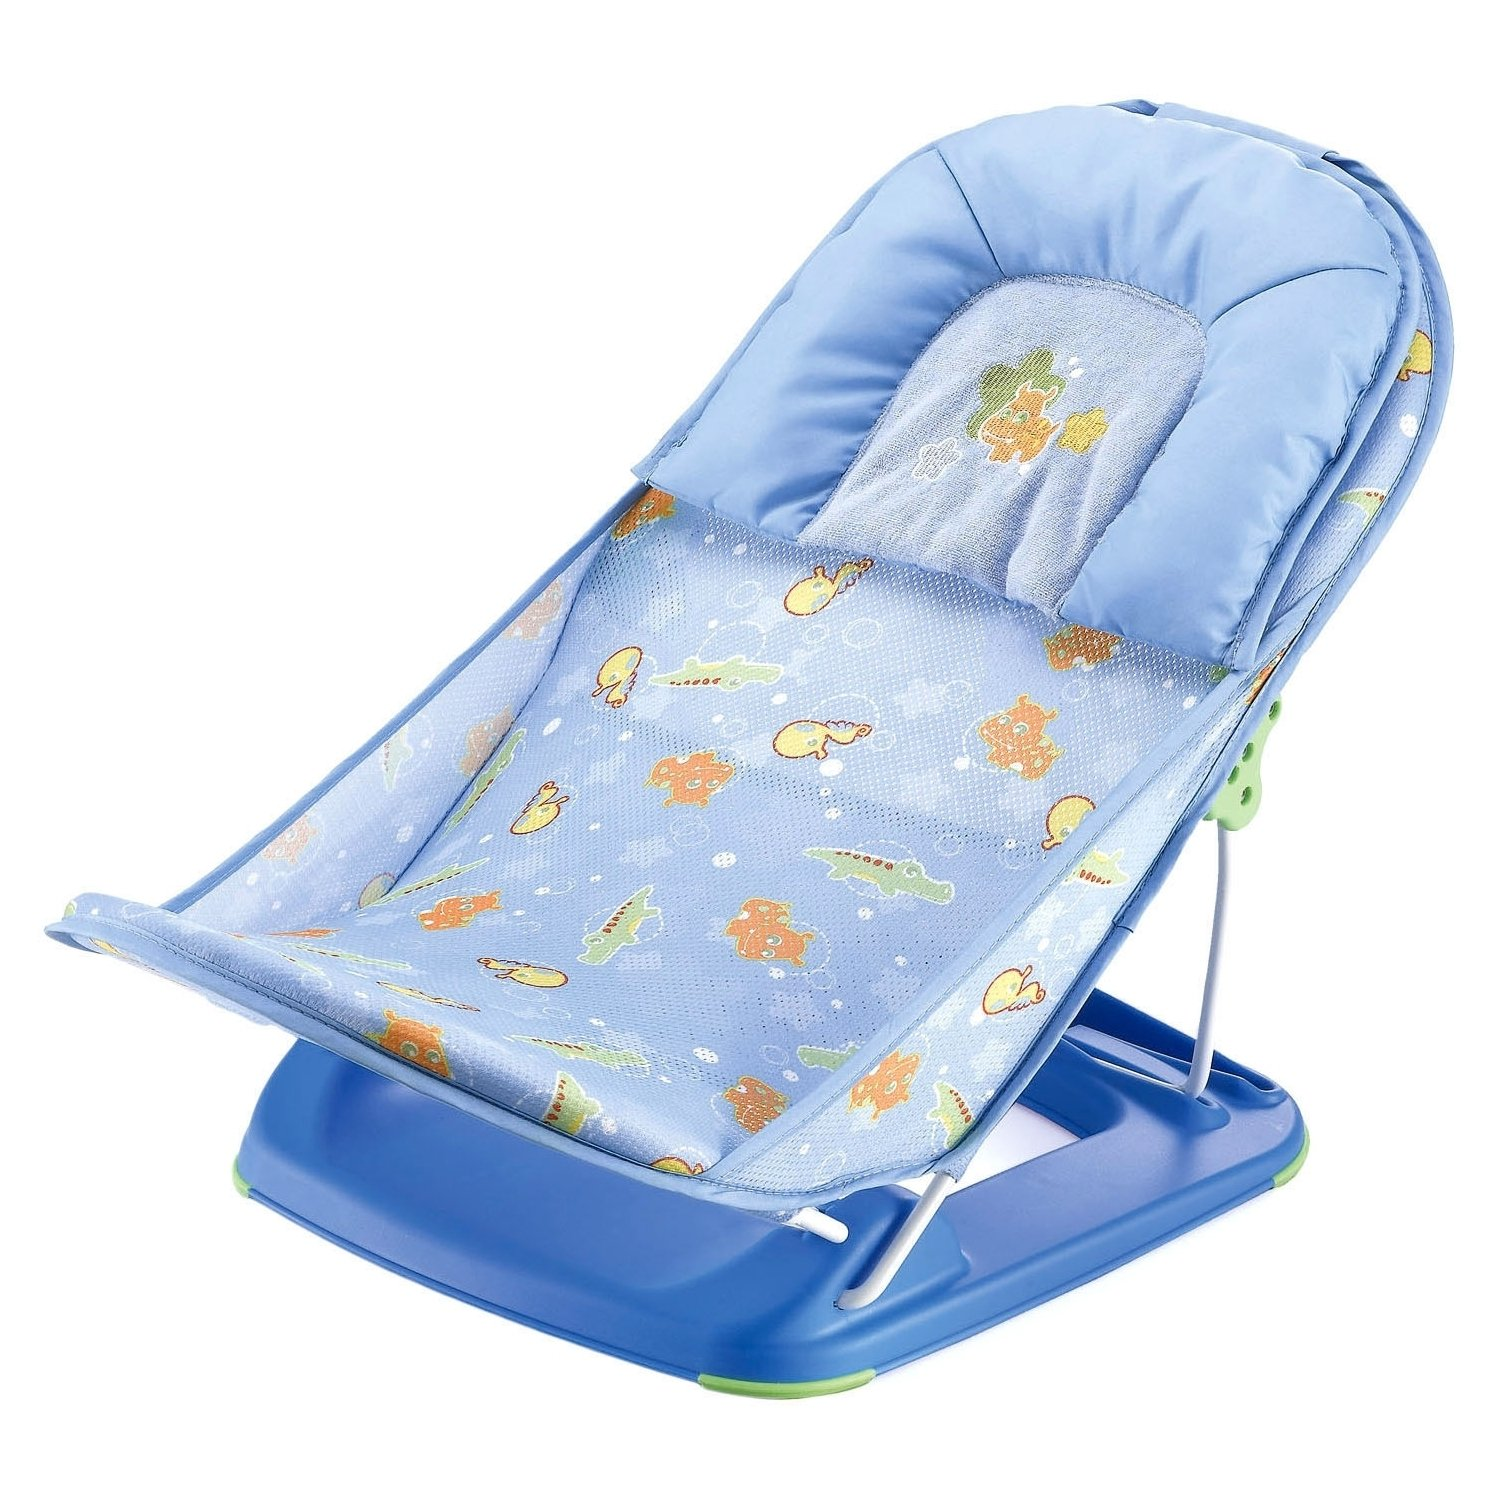 Baby bath chairs for the tub - Buy Mastela Deluxe Baby Bather Blue Blue 0m Online At Low Prices In India Amazon In